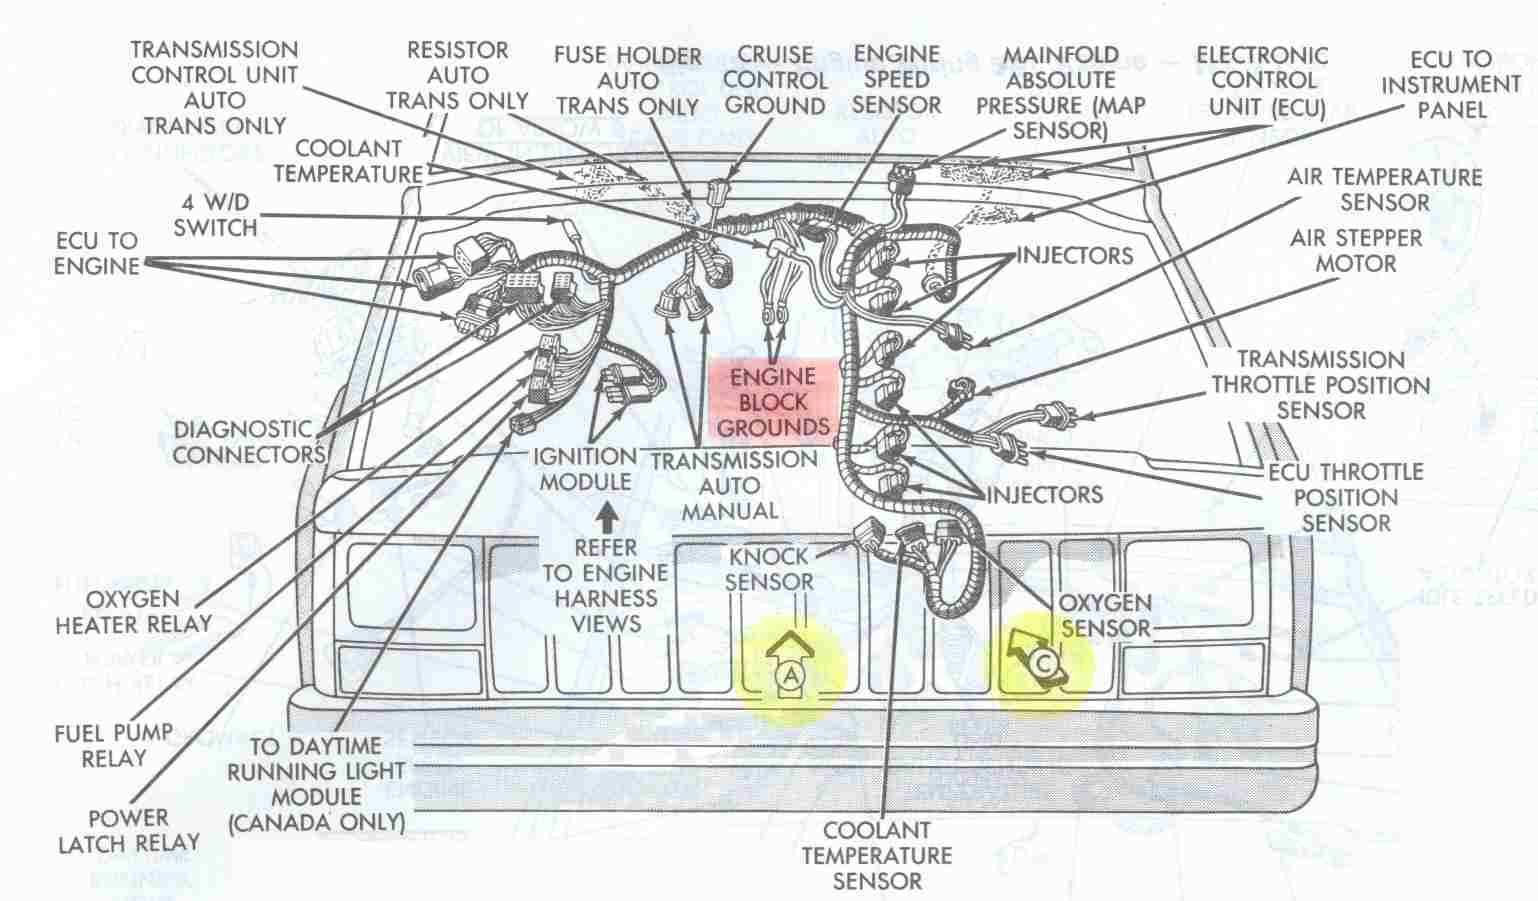 01 Jeep Cherokee Wiring Harness Schematic Diagrams Jeep Commander Vent Diagrams  2001 Jeep Cherokee Wiring Harness